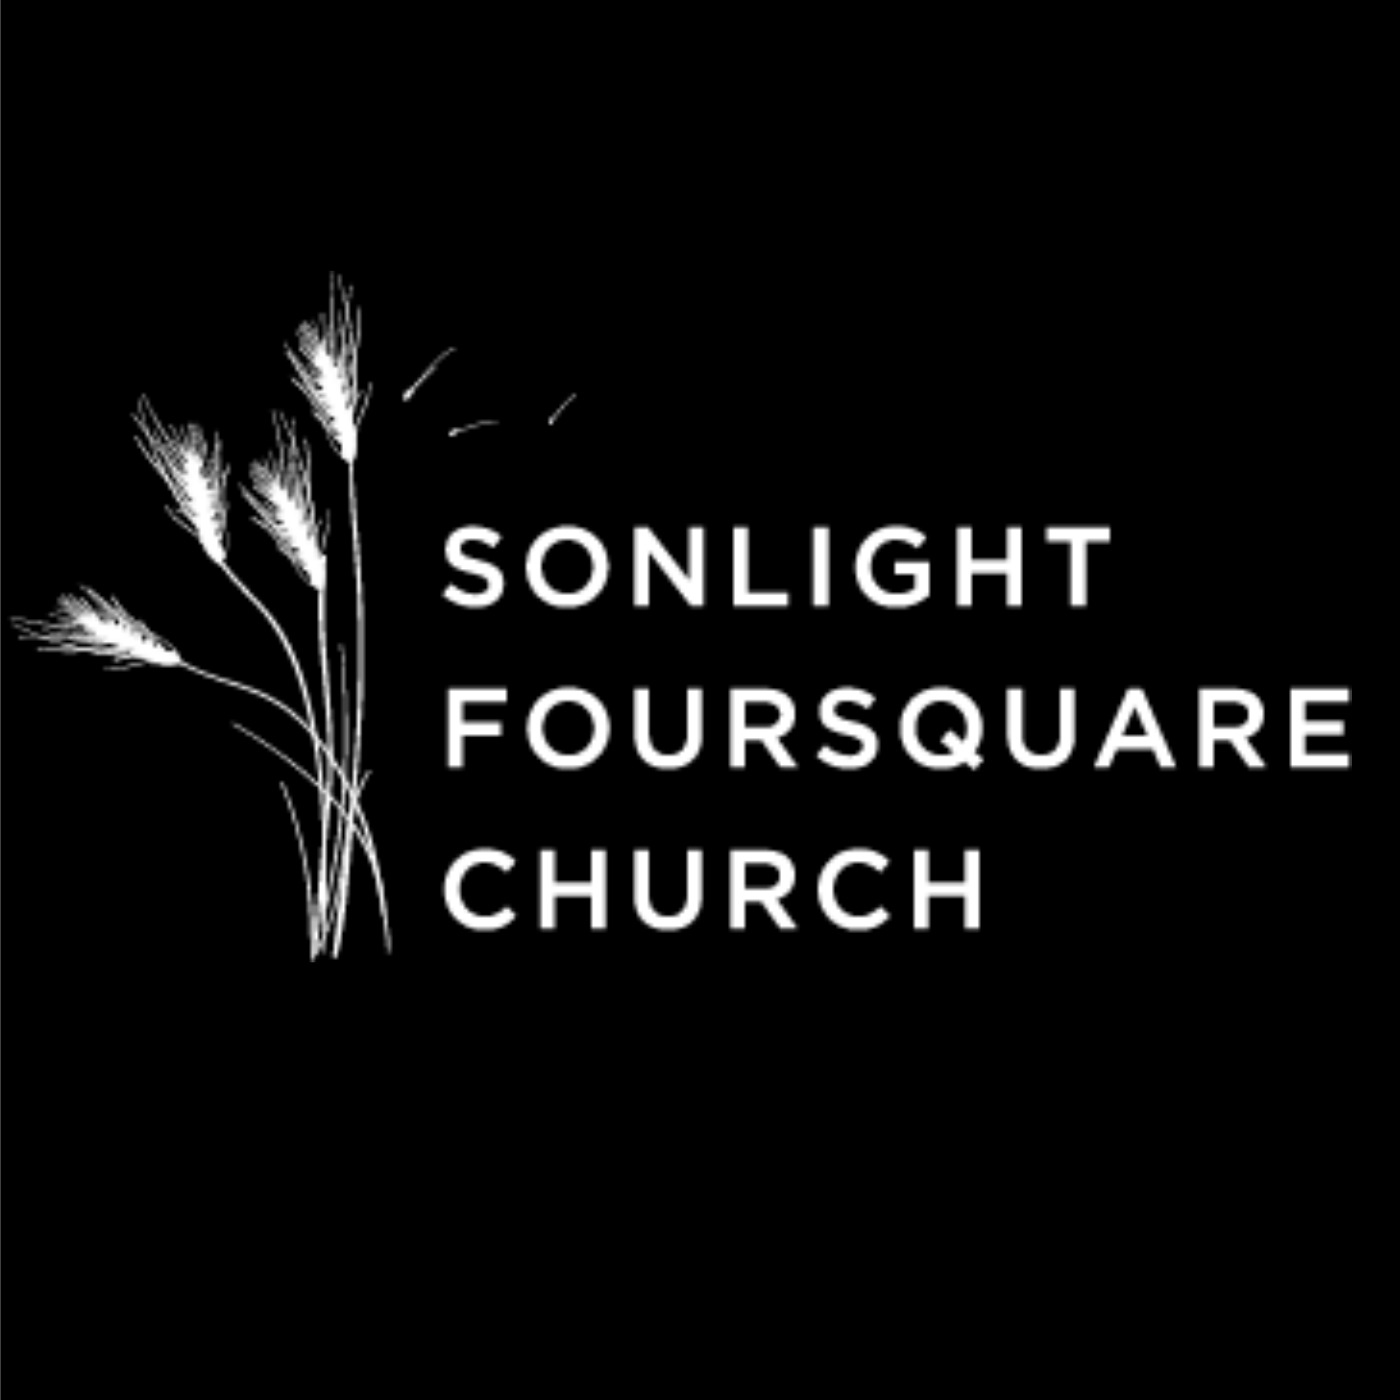 Sonlight Foursquare Church